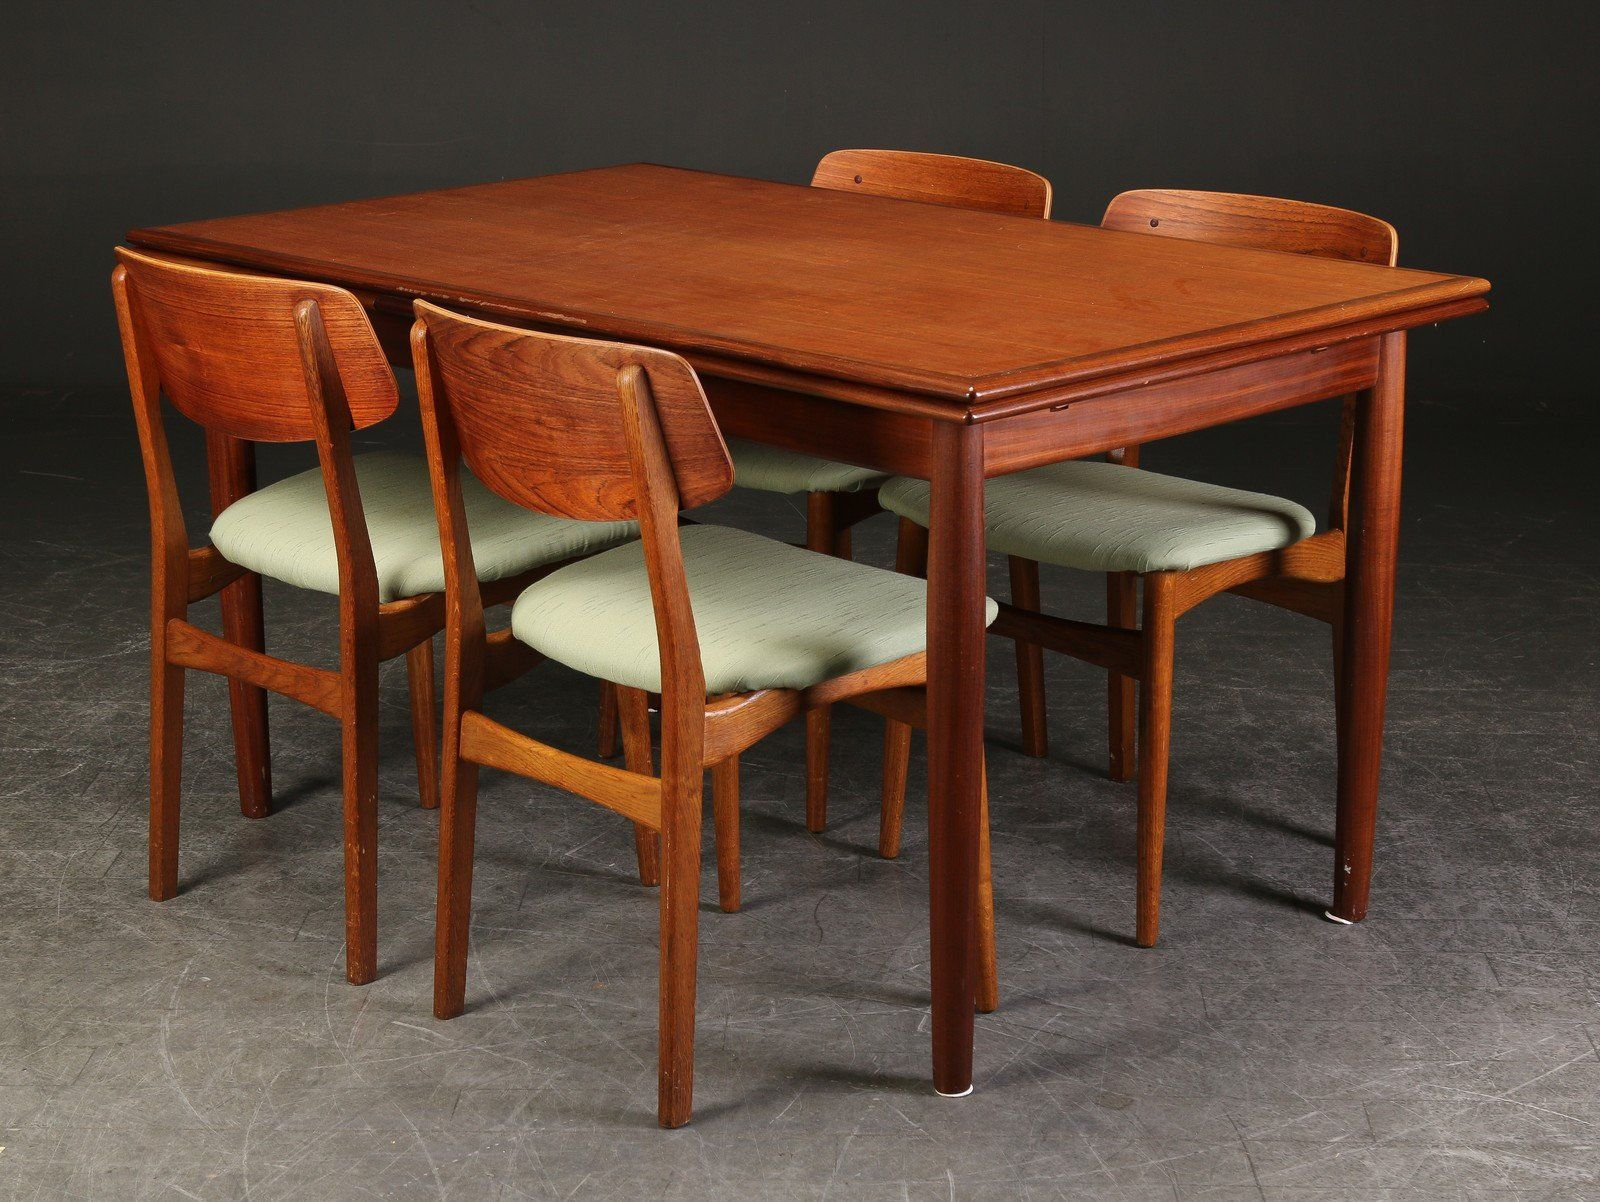 Vintage Dining Table 4 Matching Chairs Made Of Teak Wood Mid